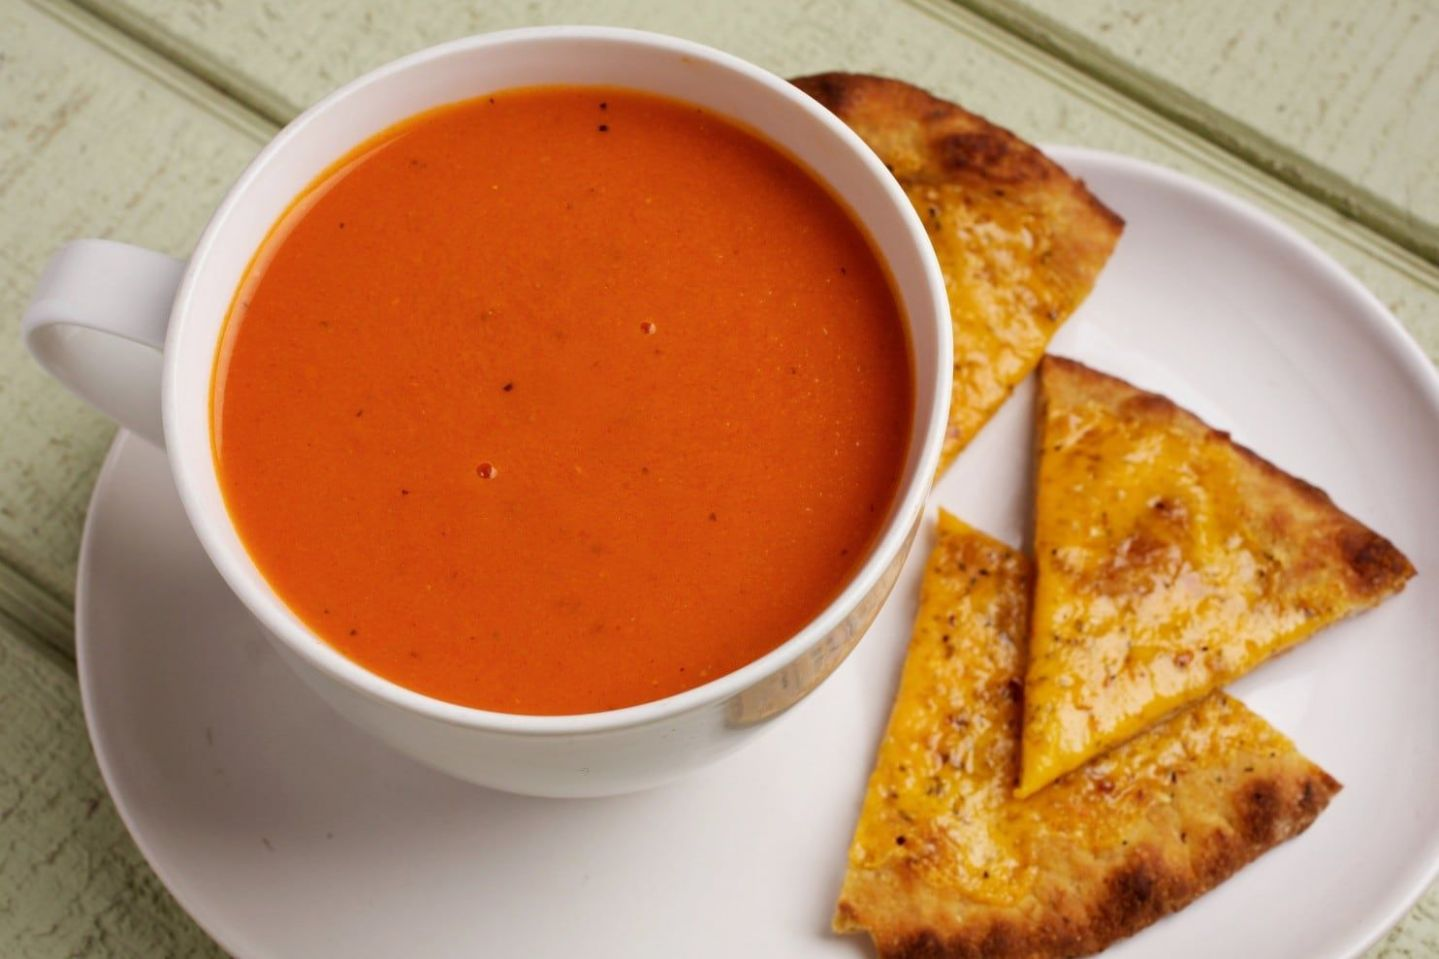 Fast Blender Tomato Soup - Soup Recipes No Blender